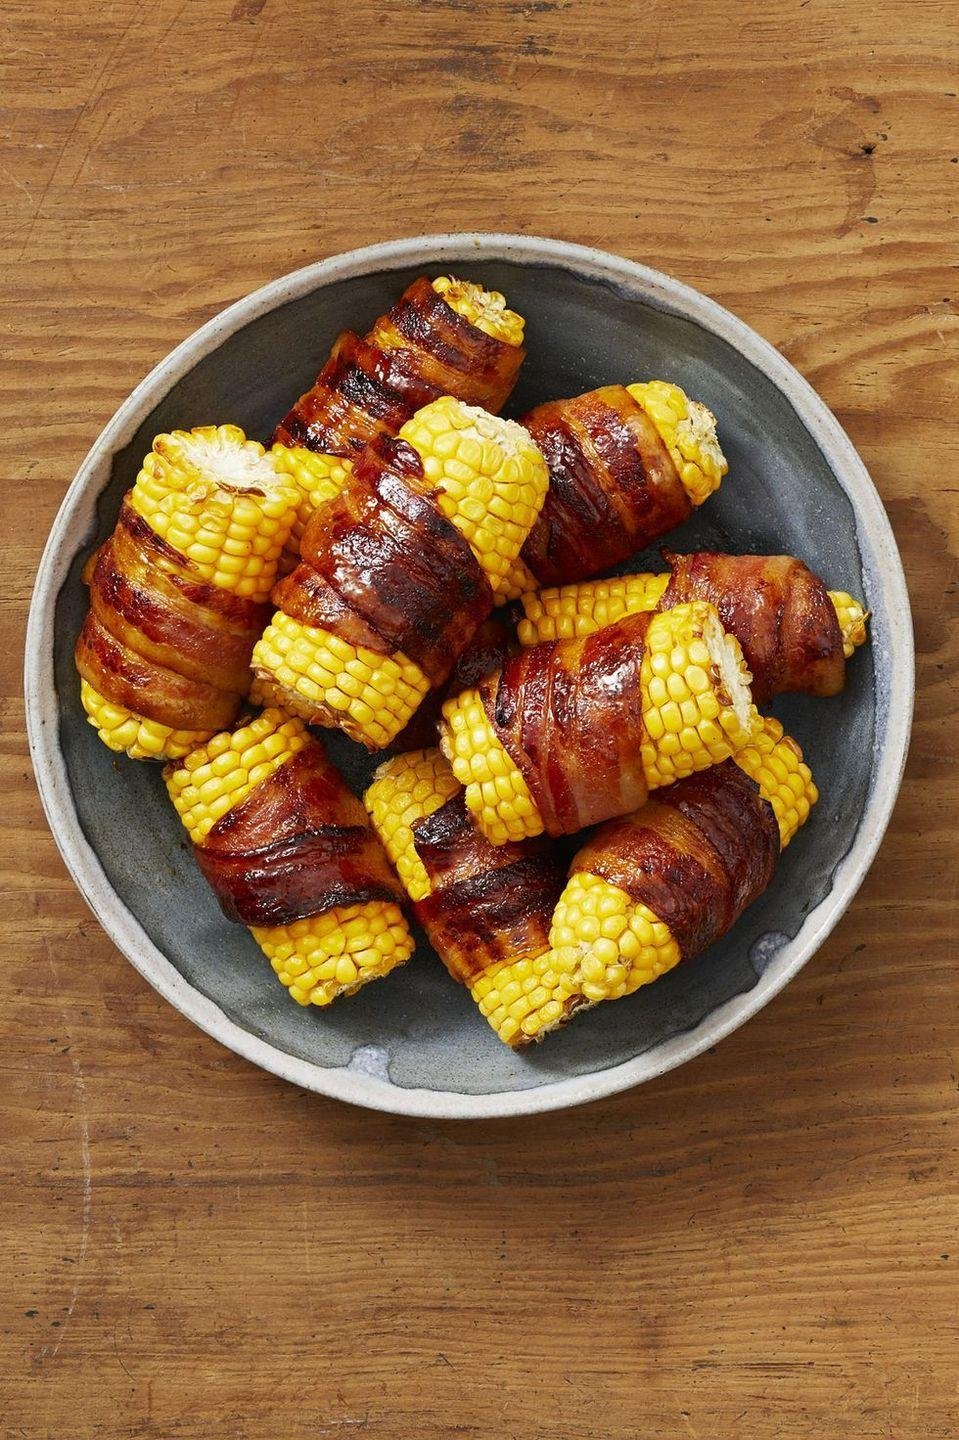 """<p>Like we mentioned, everything is better when it's wrapped in bacon! Here, bacon is tucked around and under itself before baking, ensuring that it shrinks up beautifully around each piece of corn.</p><p><strong><a href=""""https://www.thepioneerwoman.com/food-cooking/recipes/a32905619/bacon-wrapped-corn-on-the-cob-recipe/"""" rel=""""nofollow noopener"""" target=""""_blank"""" data-ylk=""""slk:Get the recipe."""" class=""""link rapid-noclick-resp"""">Get the recipe.</a></strong></p><p><a class=""""link rapid-noclick-resp"""" href=""""https://go.redirectingat.com?id=74968X1596630&url=https%3A%2F%2Fwww.walmart.com%2Fip%2FThe-Pioneer-Woman-Stainless-Steel-12-Inch-Lock-Tongs%2F276114322&sref=https%3A%2F%2Fwww.thepioneerwoman.com%2Ffood-cooking%2Fmeals-menus%2Fg32157273%2Ffourth-of-july-appetizers%2F"""" rel=""""nofollow noopener"""" target=""""_blank"""" data-ylk=""""slk:SHOP TONGS"""">SHOP TONGS</a></p>"""